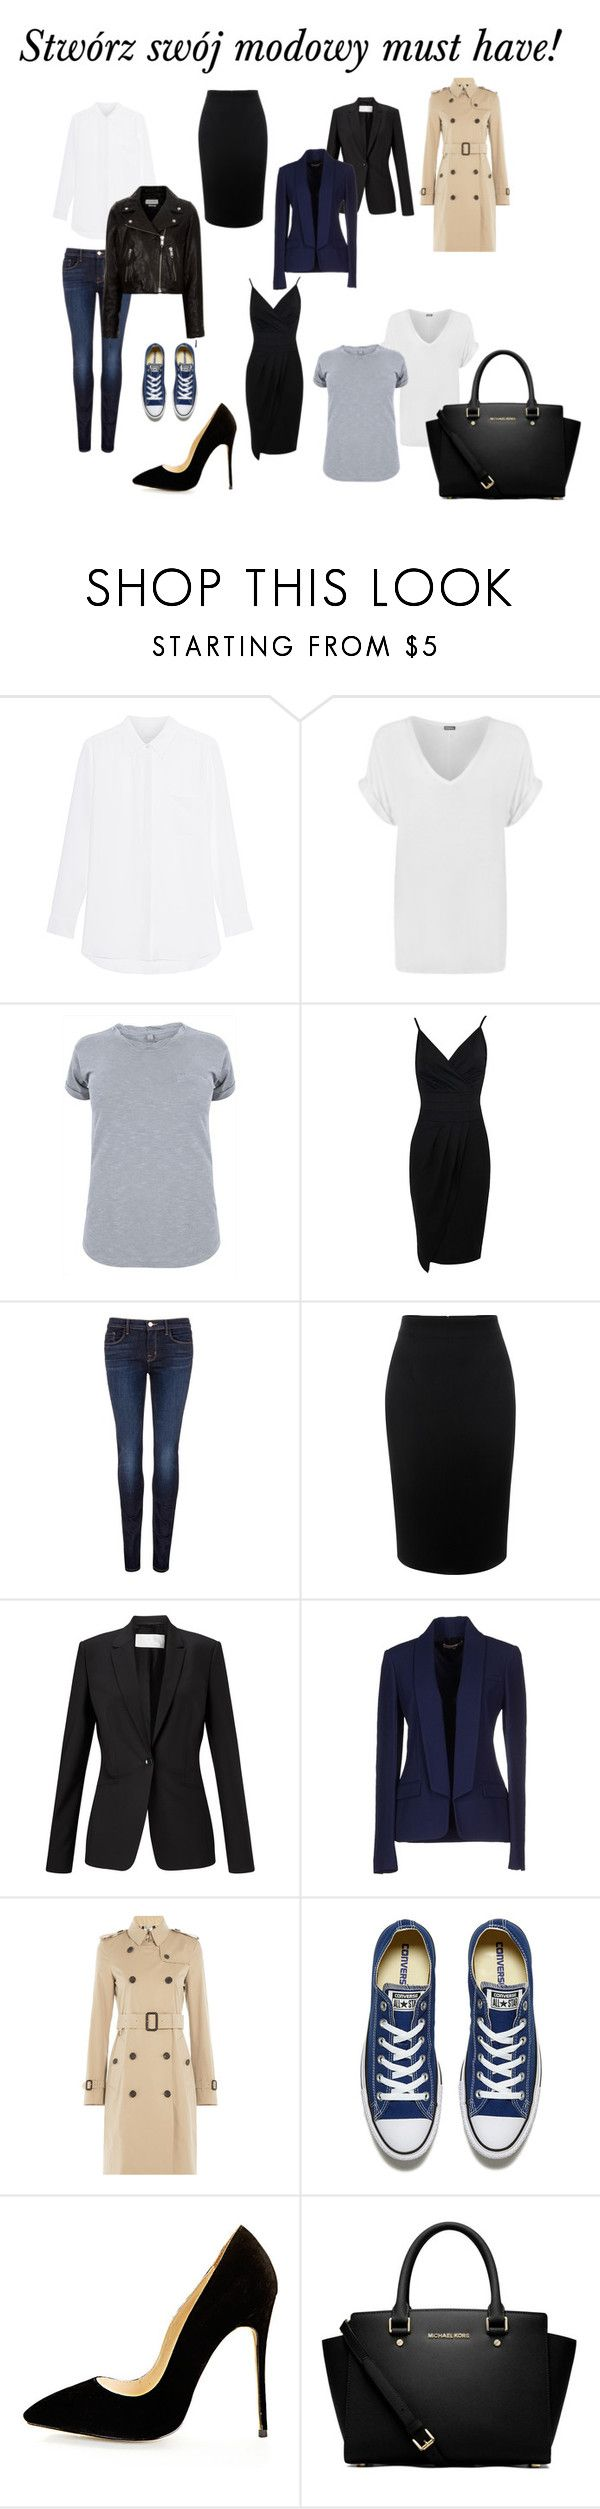 """Swórz ze mną swój modowy must have!"" by marta-waluk on Polyvore featuring moda, WearAll, J Brand, Alexander McQueen, HUGO, Michael Kors, Burberry, Converse, MICHAEL Michael Kors i Étoile Isabel Marant"